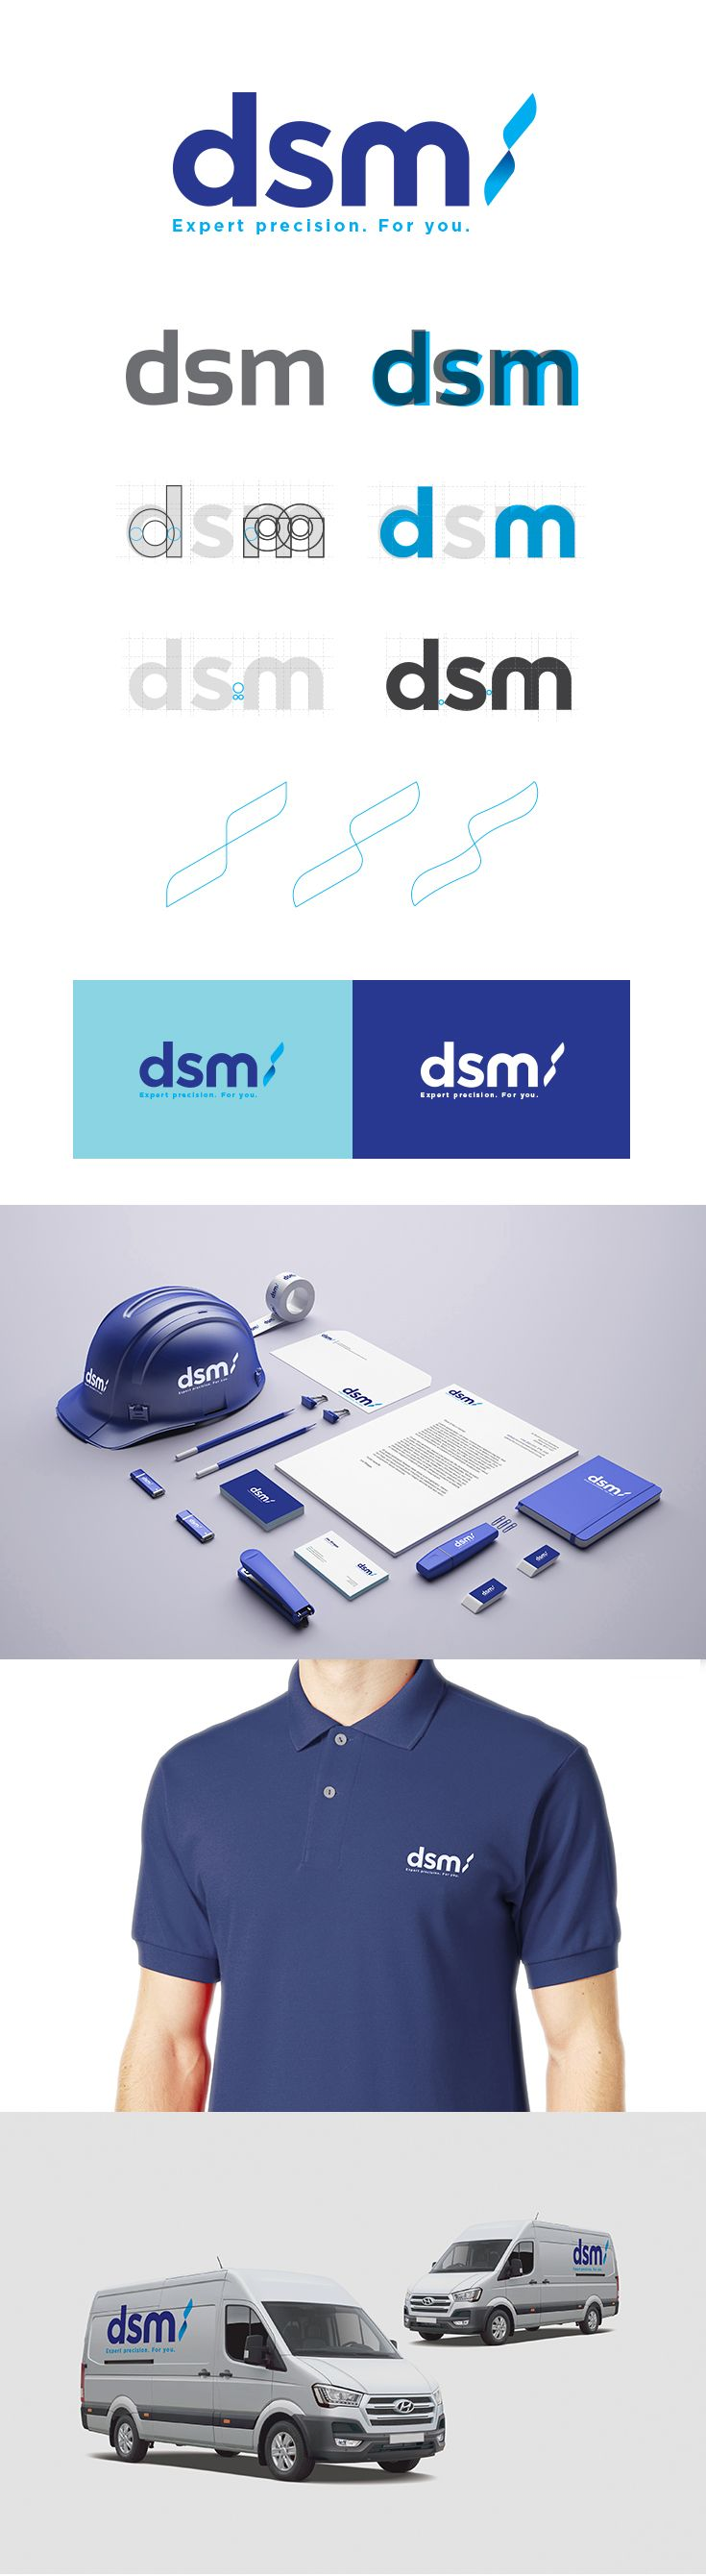 A new clean & modern identity for forward thinking metal company DSM. #branding #logo #design